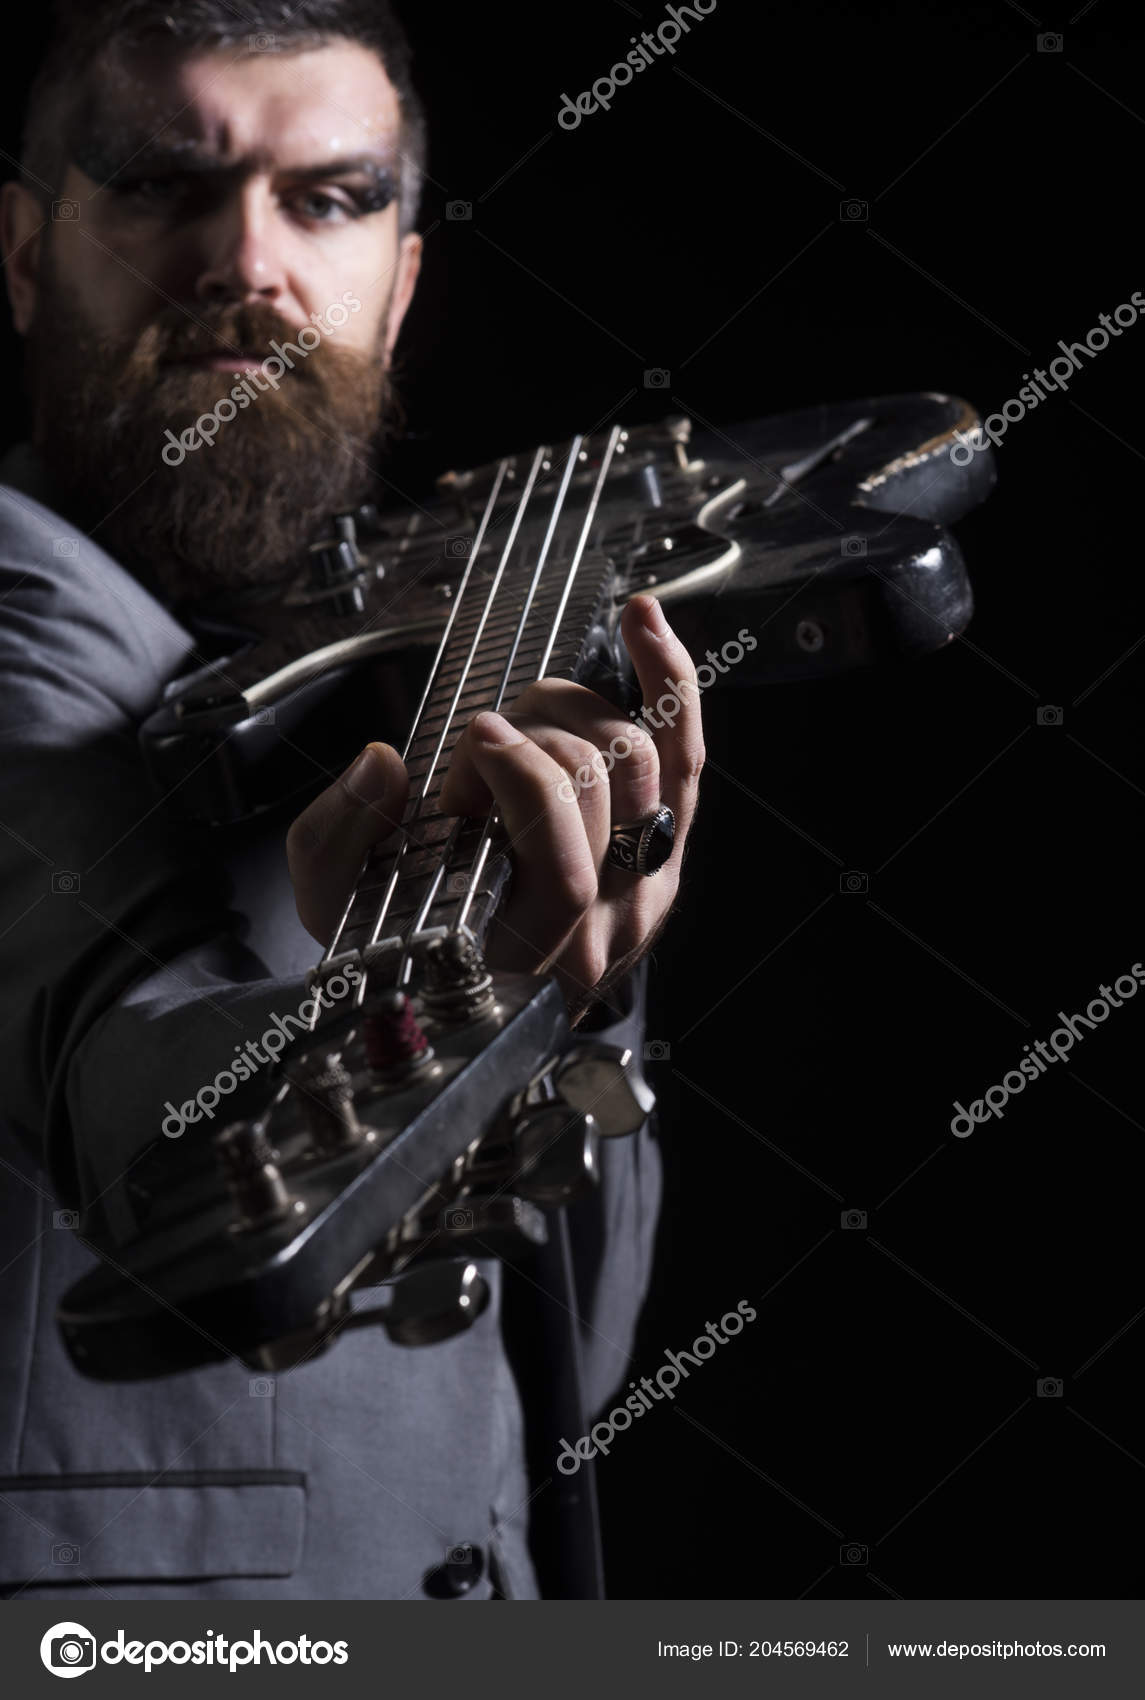 Guitar Player Hold Electric Instrument Bearded Man Play Guitar